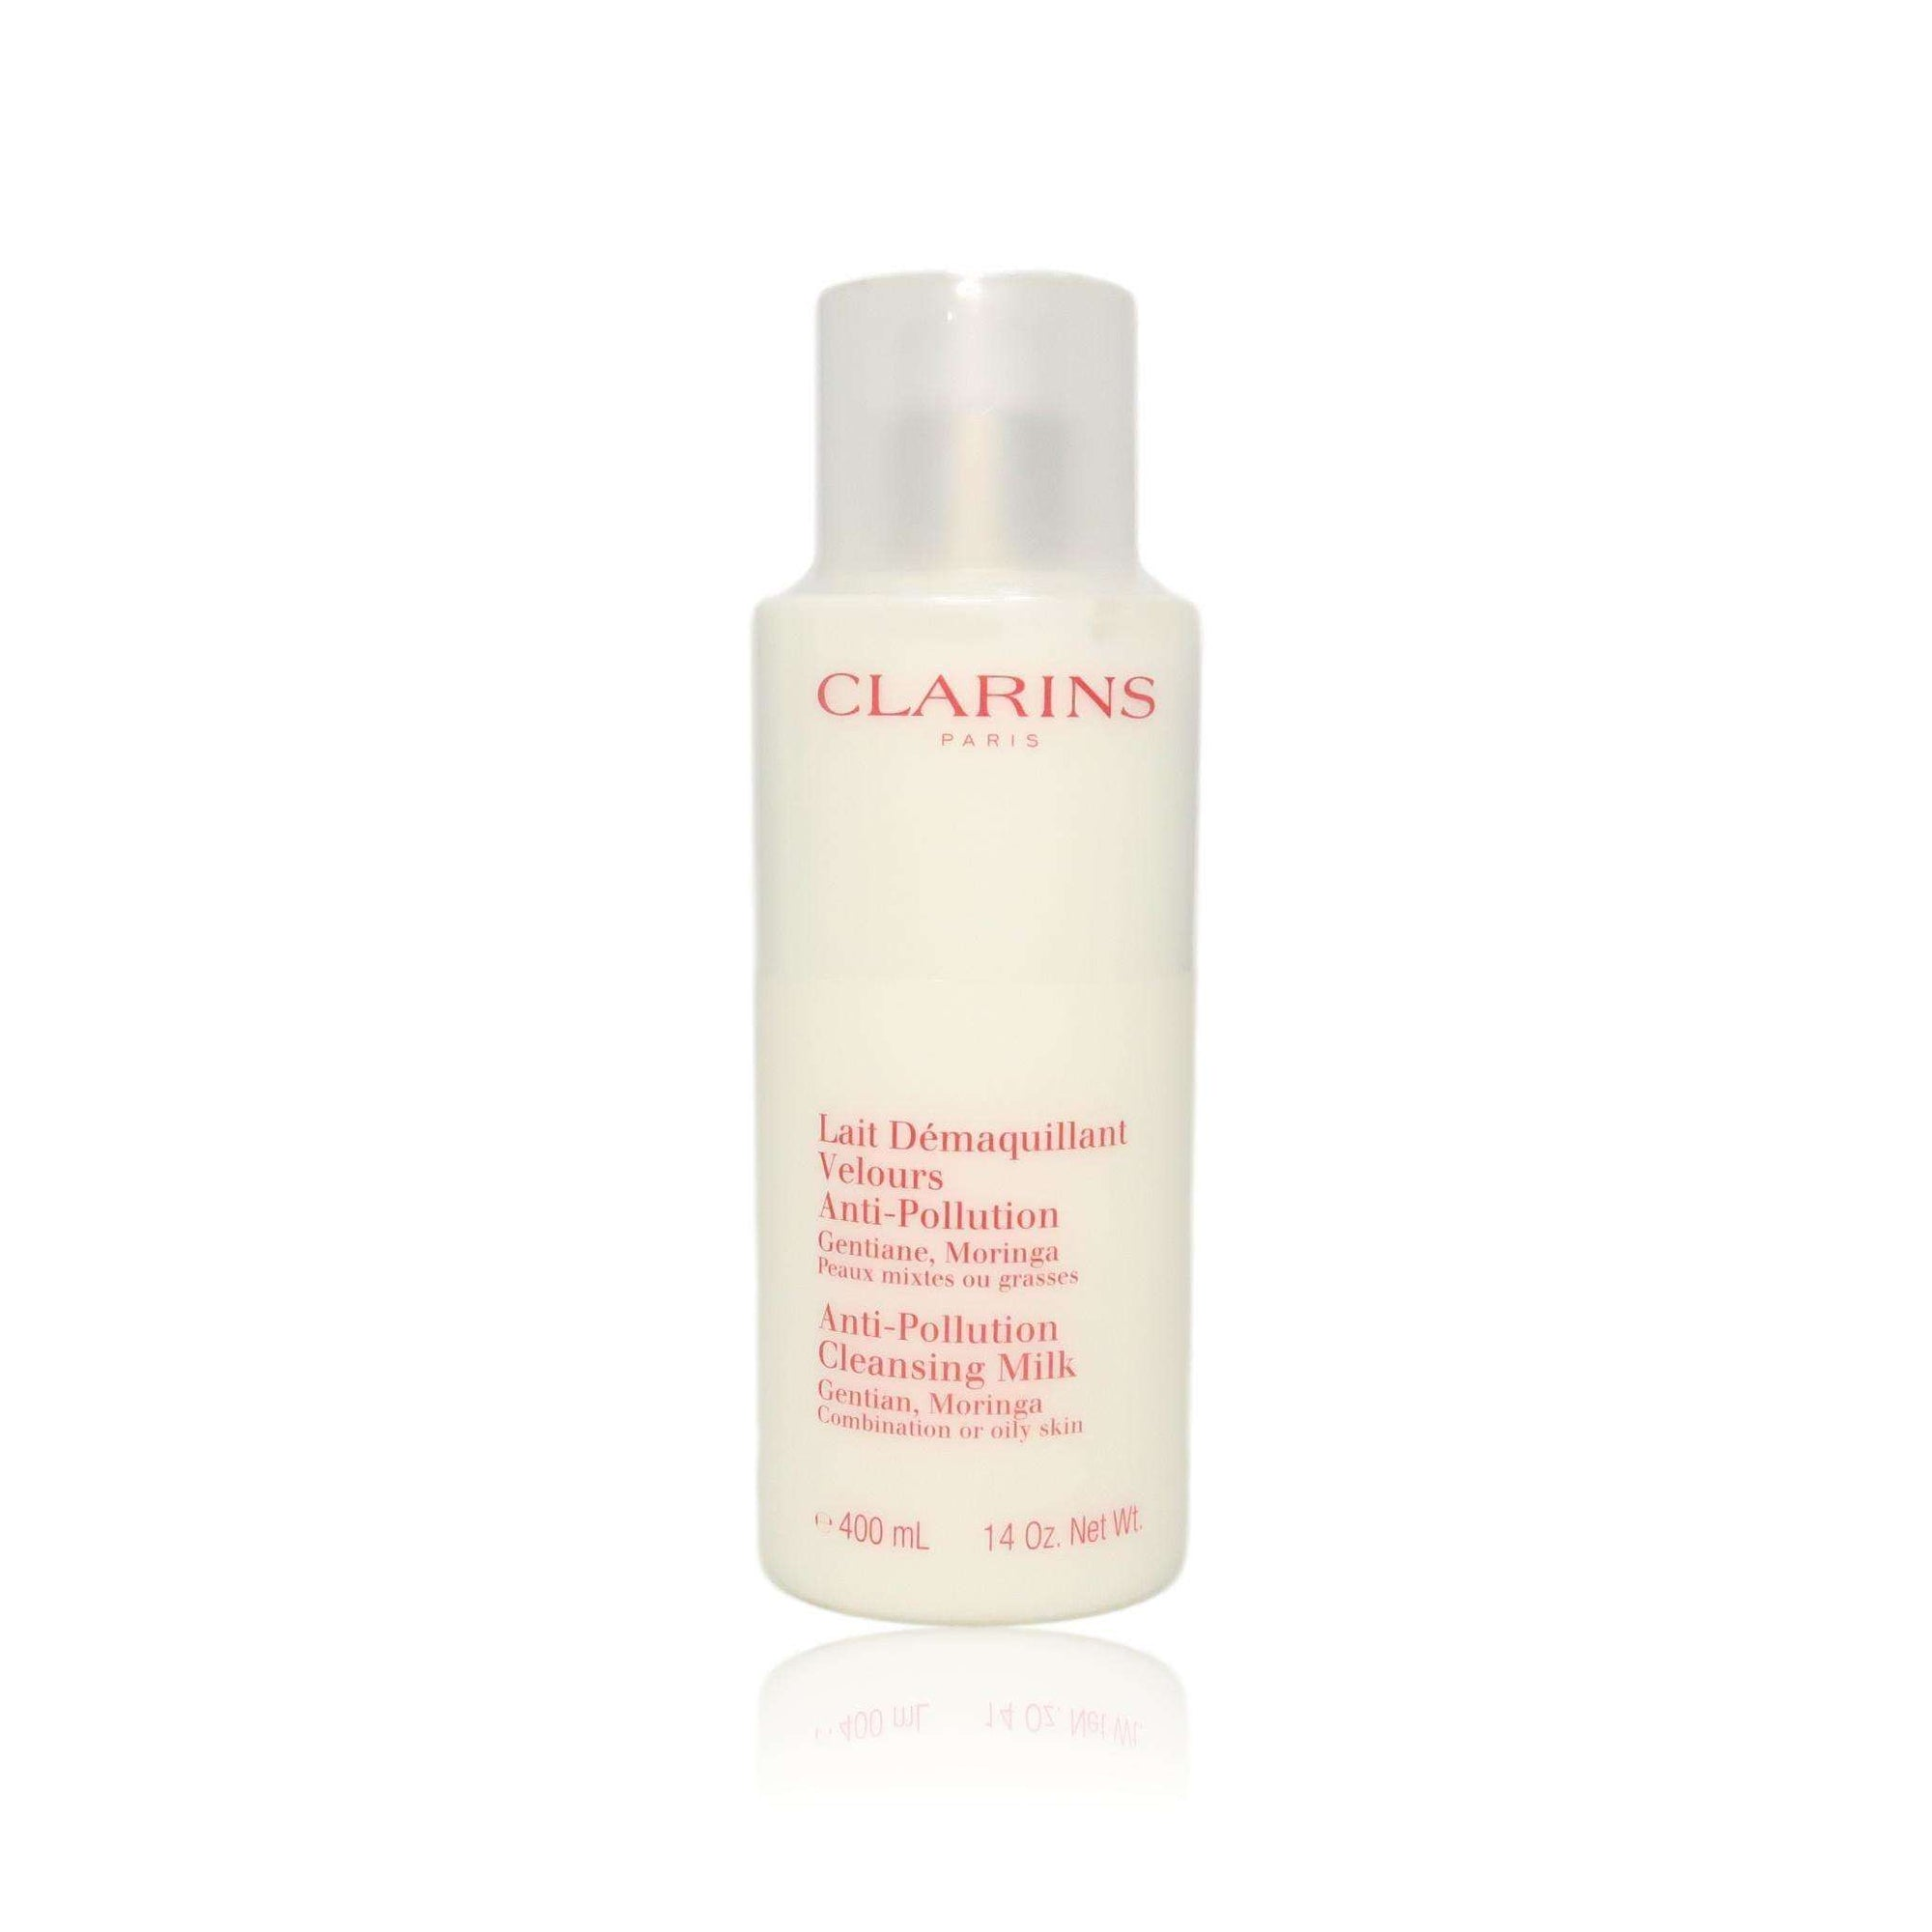 Clarins Cleansing Milk with Gentian Combination/Oily Skin